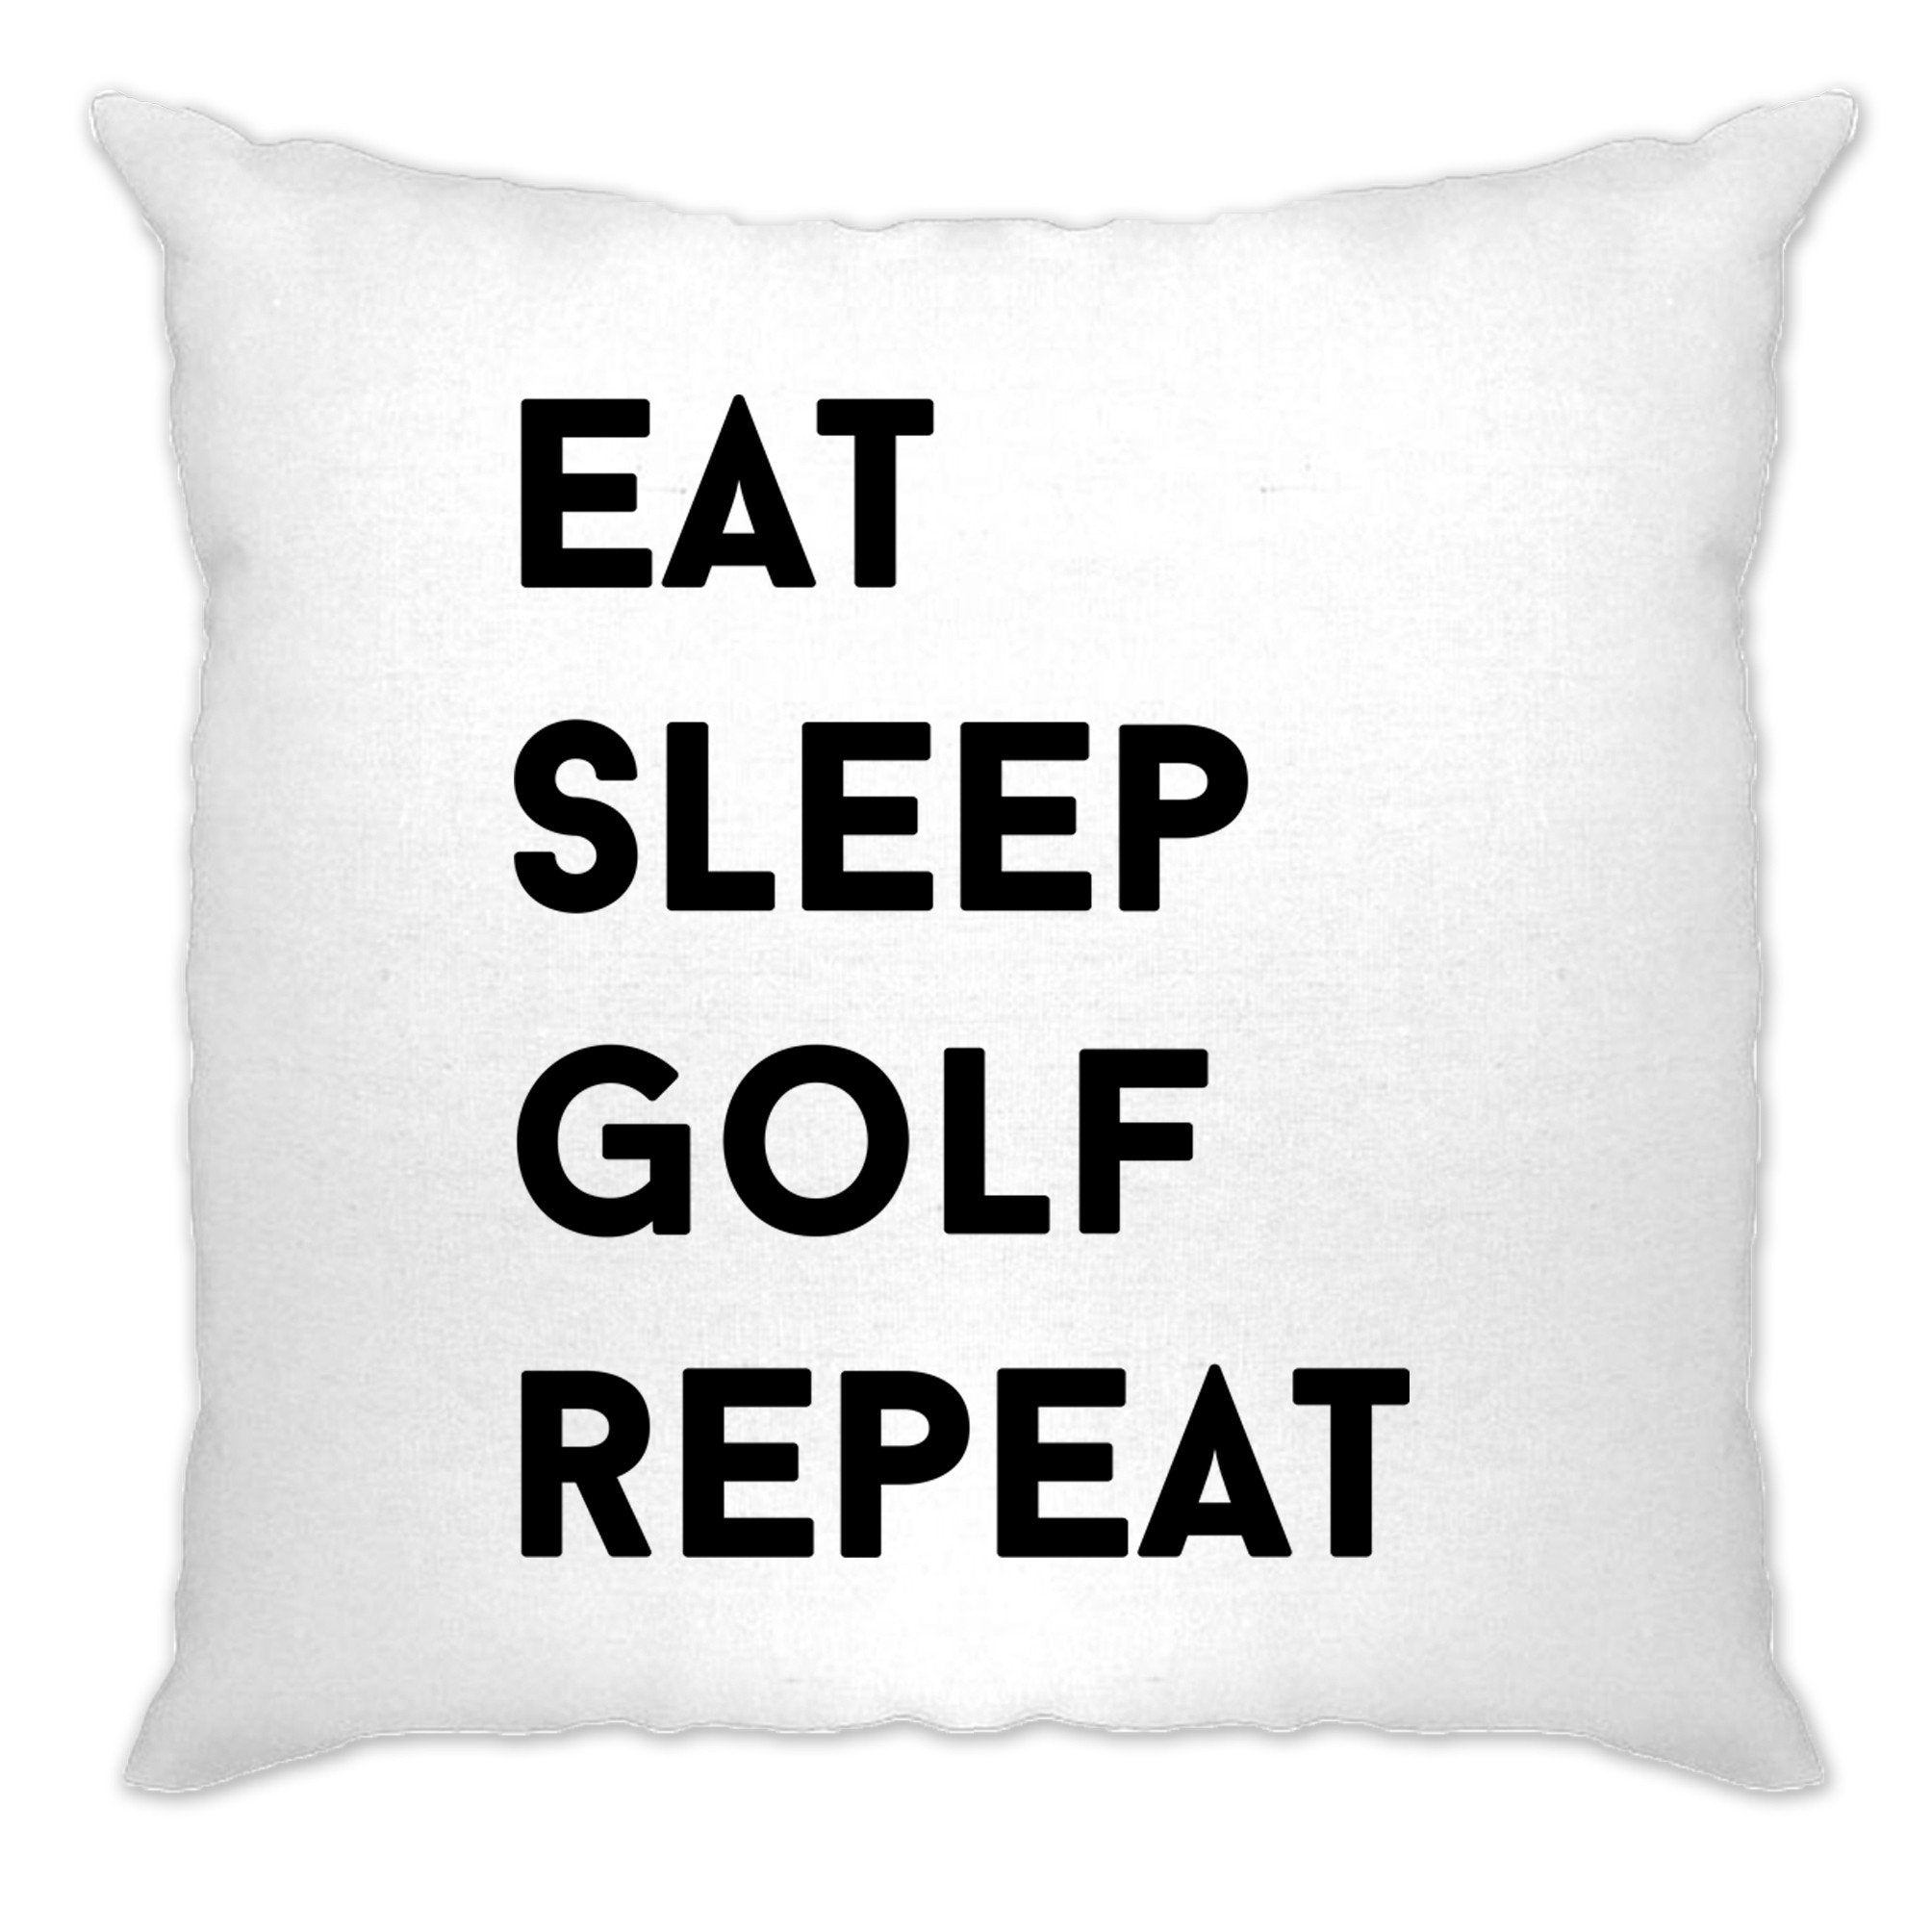 Sports Cushion Cover Eat, Sleep, Golf, Repeat Slogan